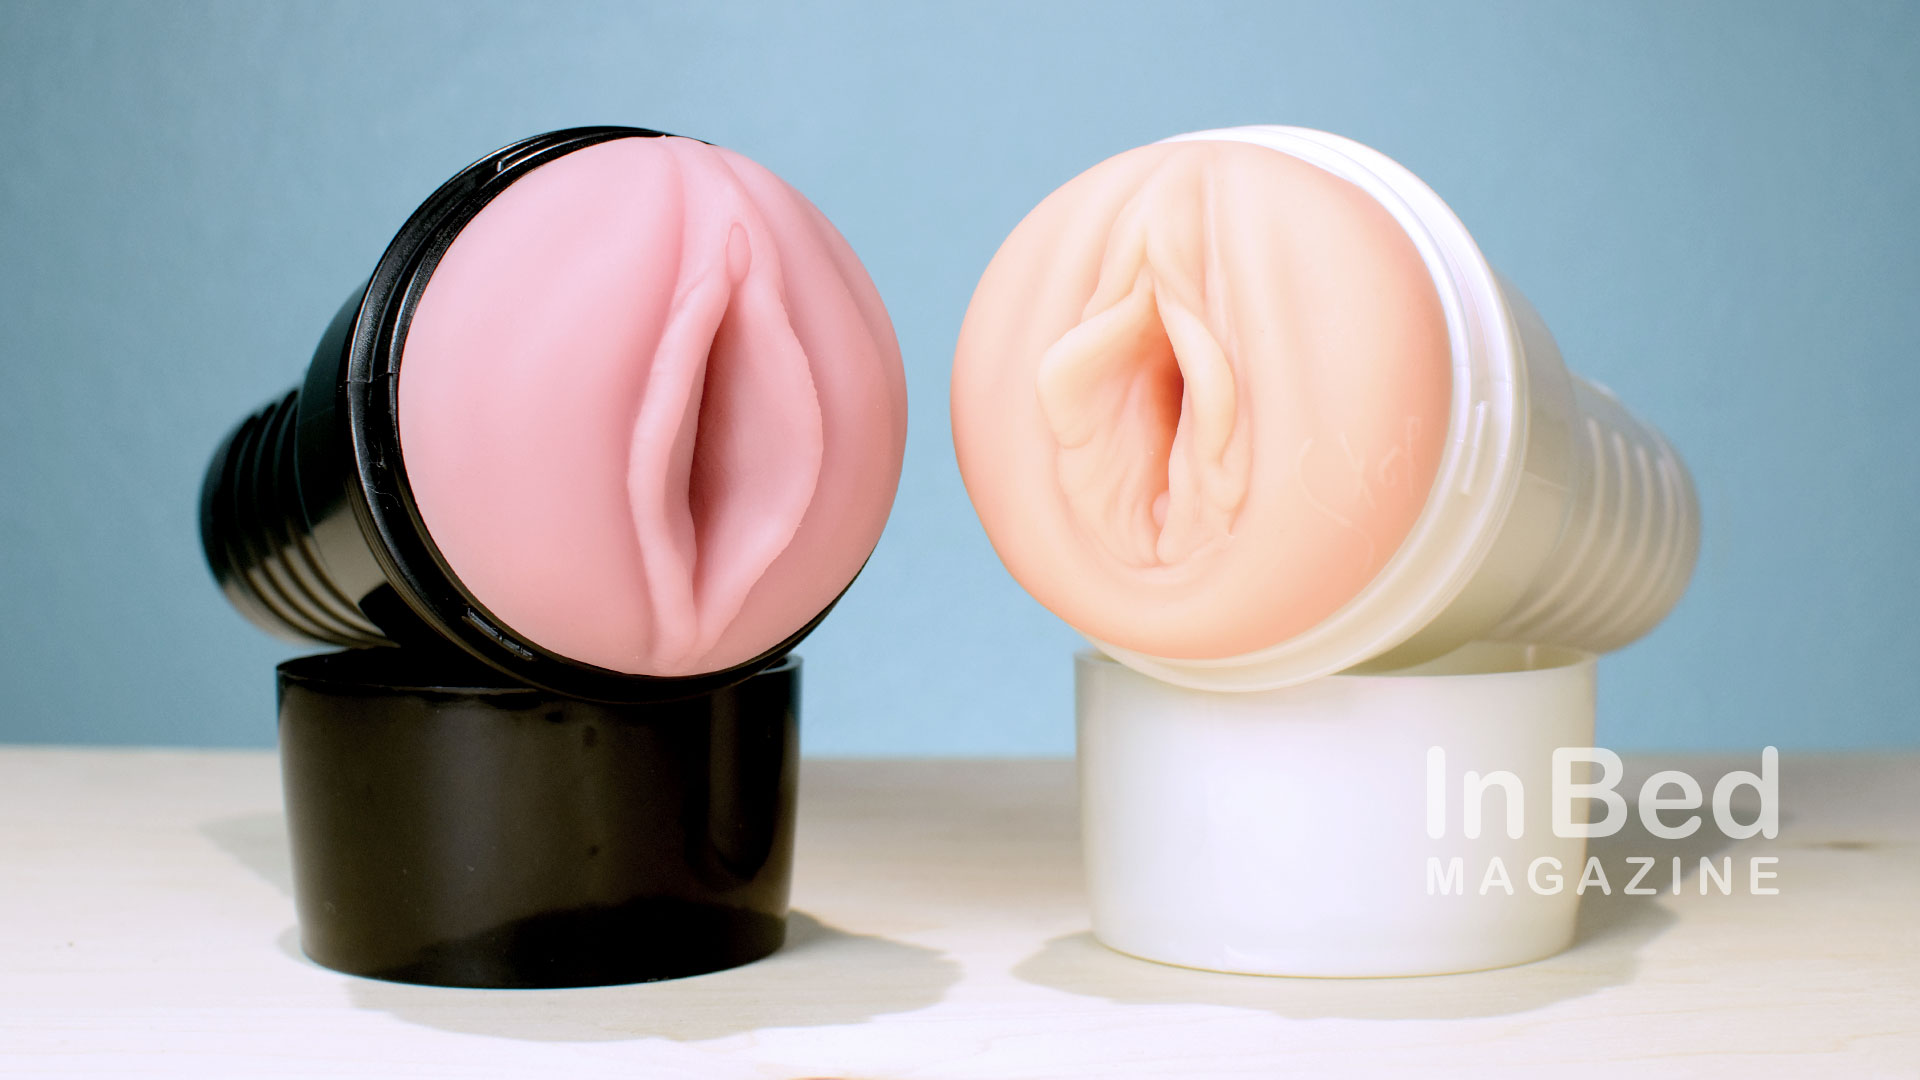 Price Cheapest Fleshlight